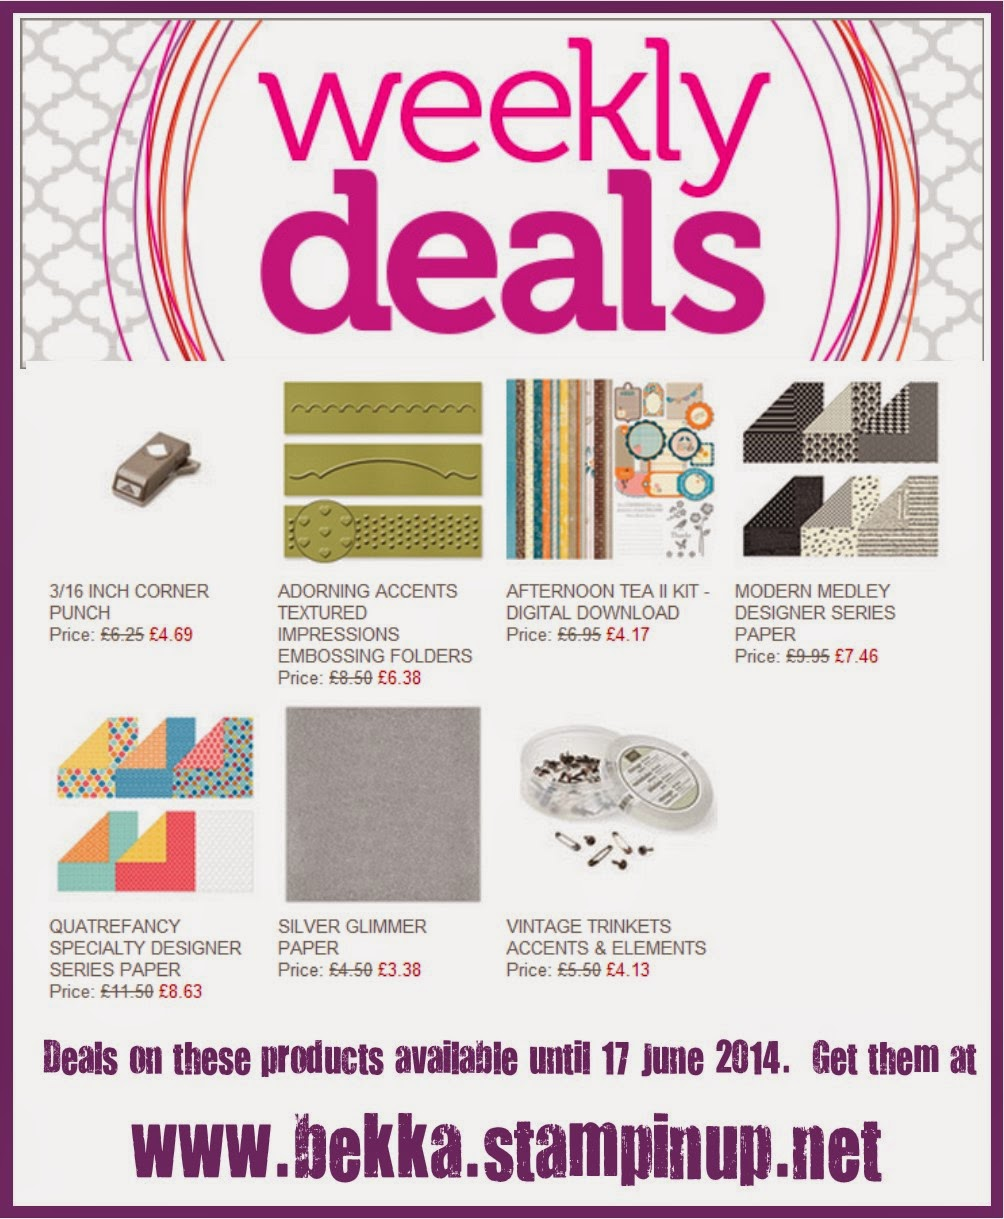 Weekly deals from Stampin' Up! UK available at www.bekka.stampinup.net